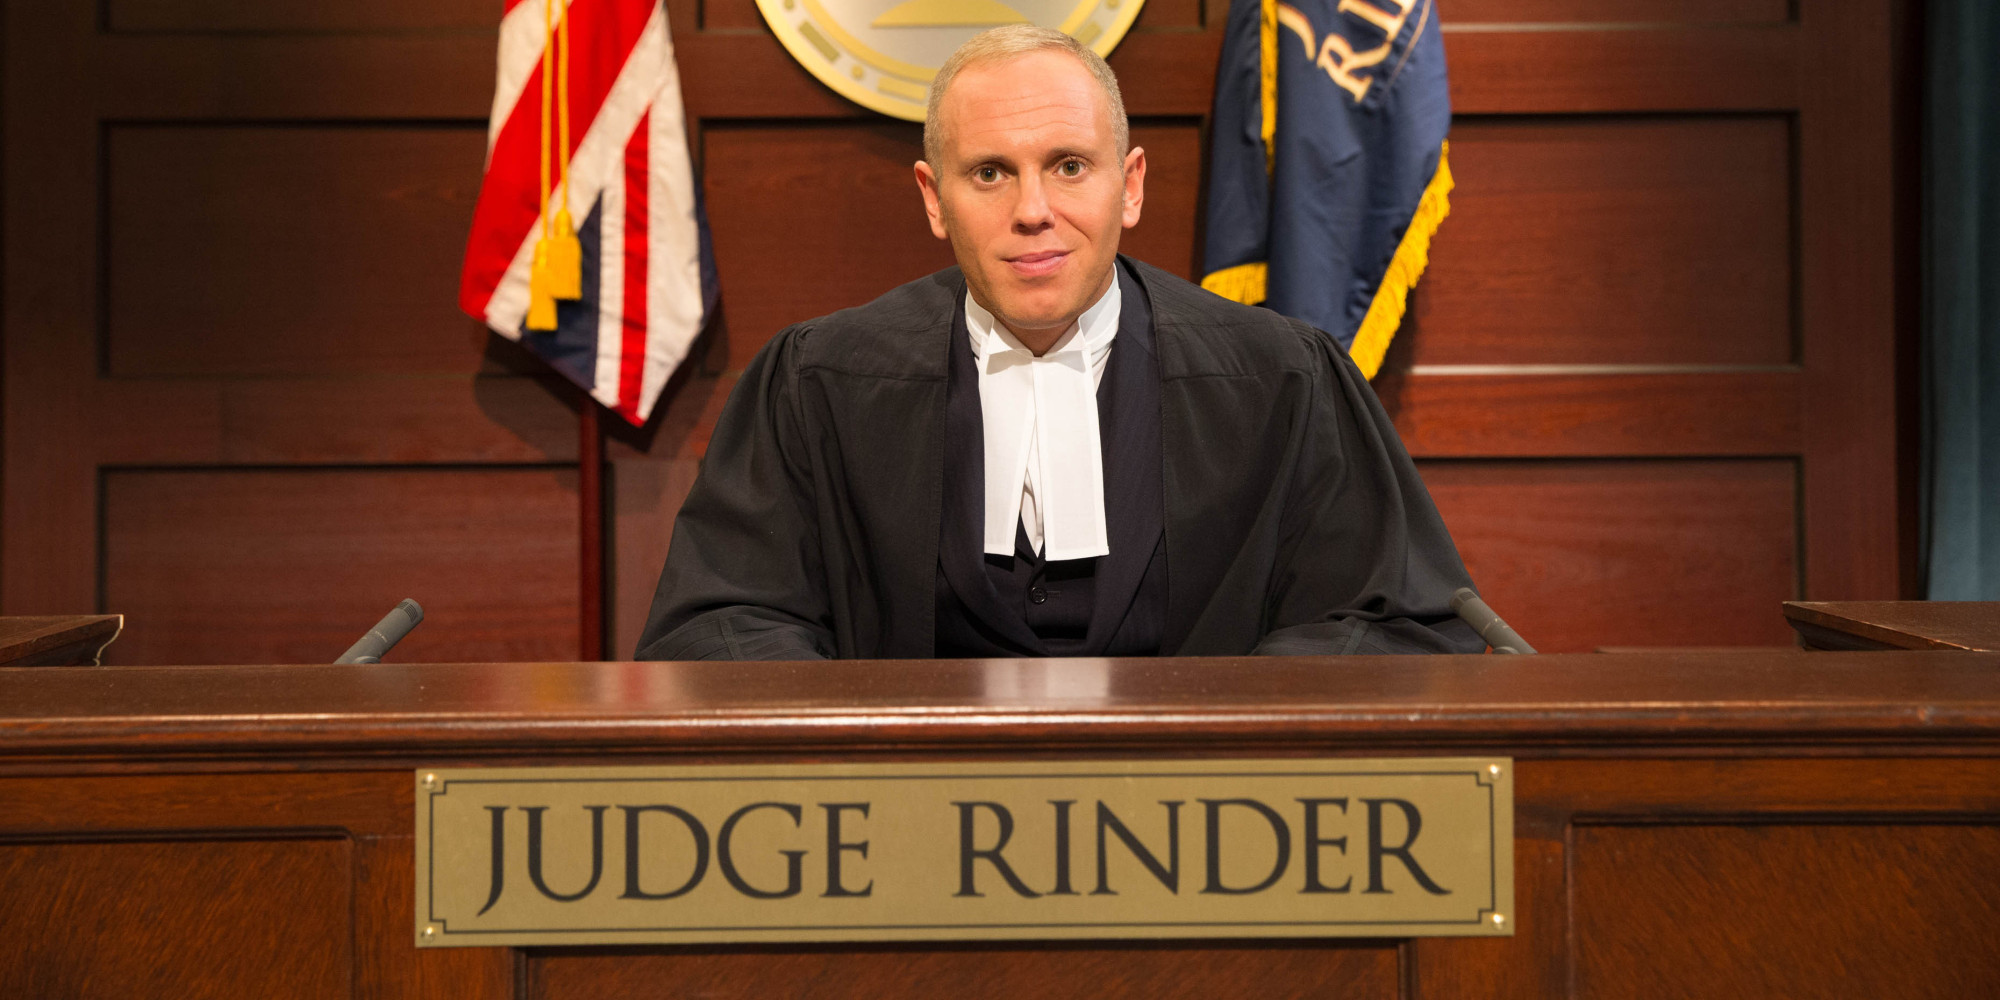 Image result for image of judge rinder